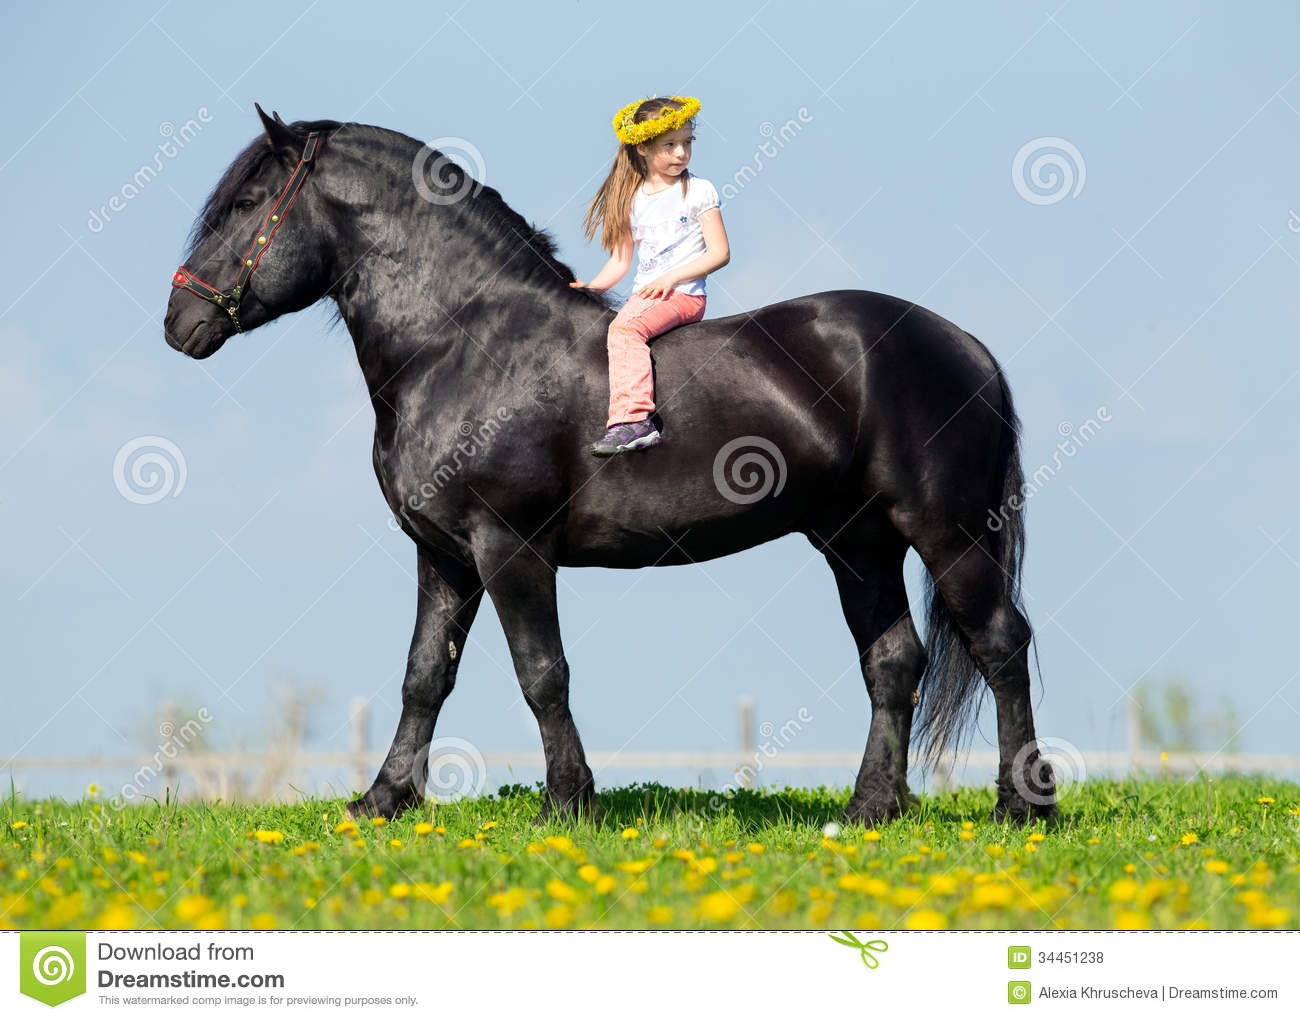 635 Draft Horse Riding Photos Free Royalty Free Stock Photos From Dreamstime